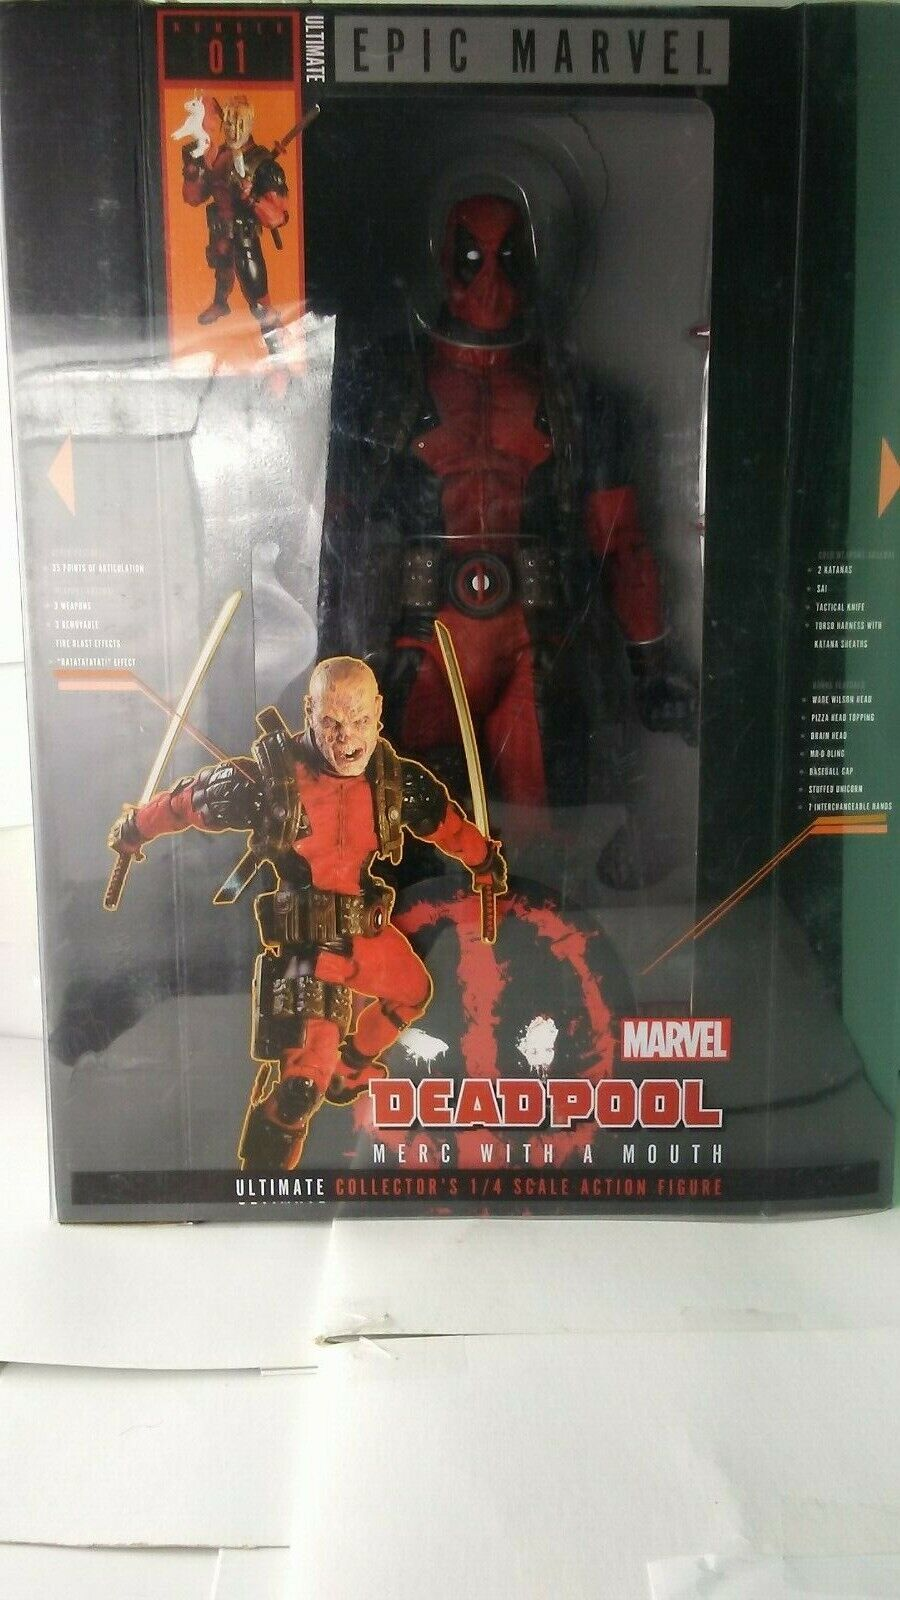 Neca Marvel Deadpool Ulimate Collector's 1 4 Escala Figura De Acción